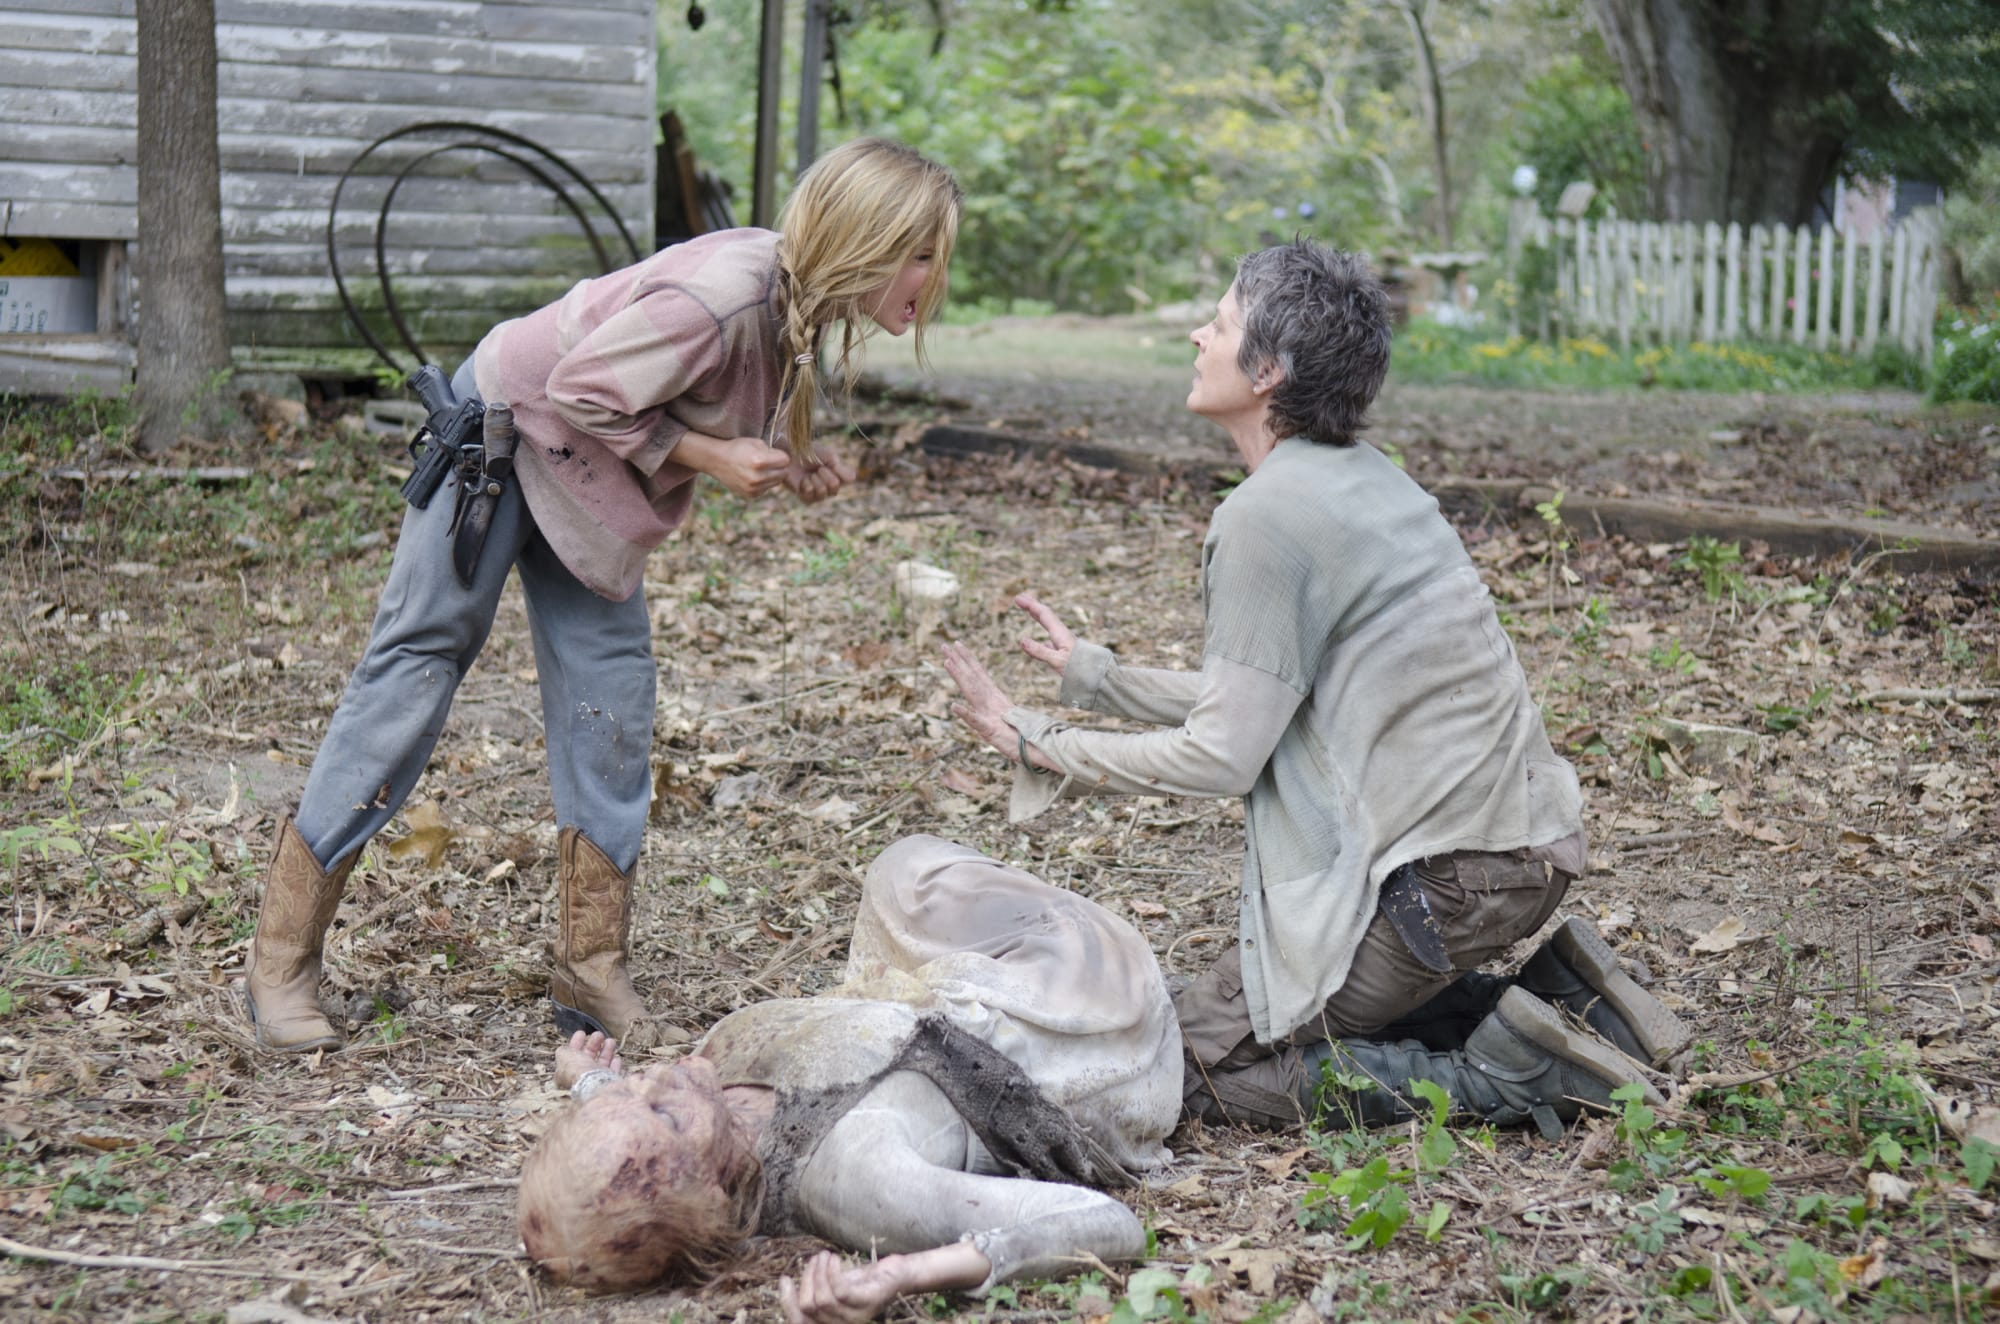 The Walking Dead is so much more than any one genre